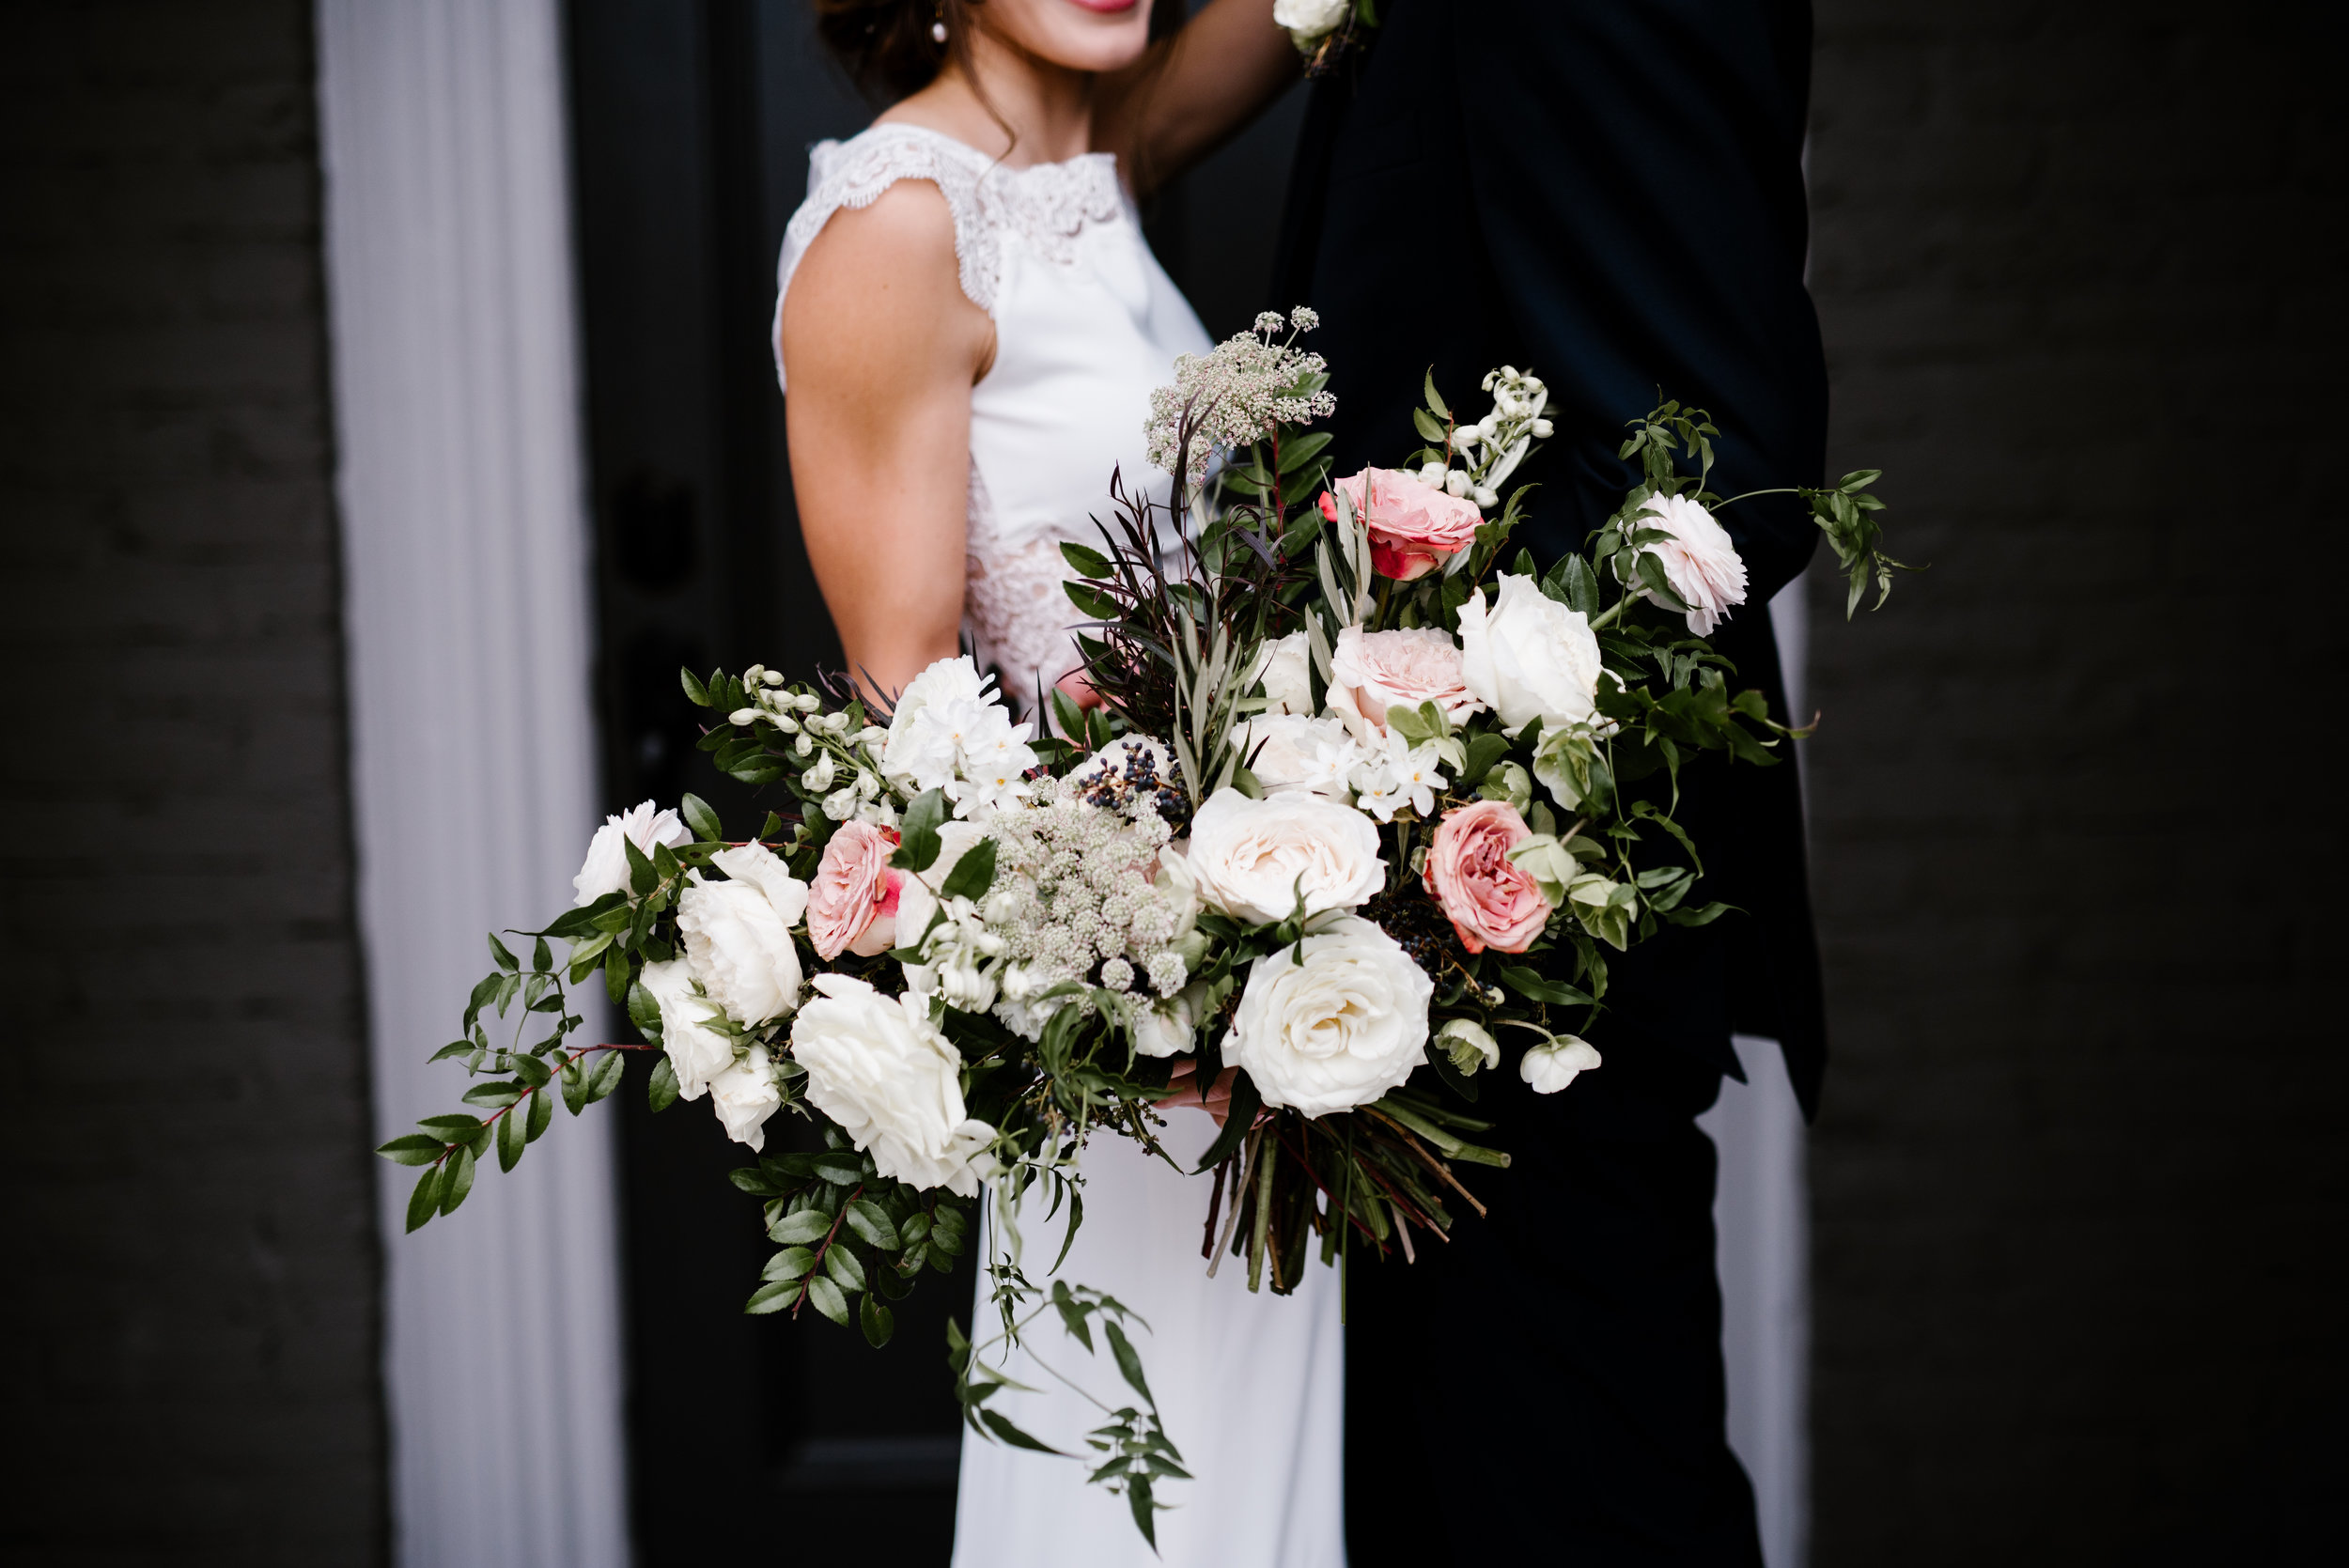 Muted, organic bridal bouquet with white, blush, and copper flowers // Nashville Wedding Florist at the Cordelle